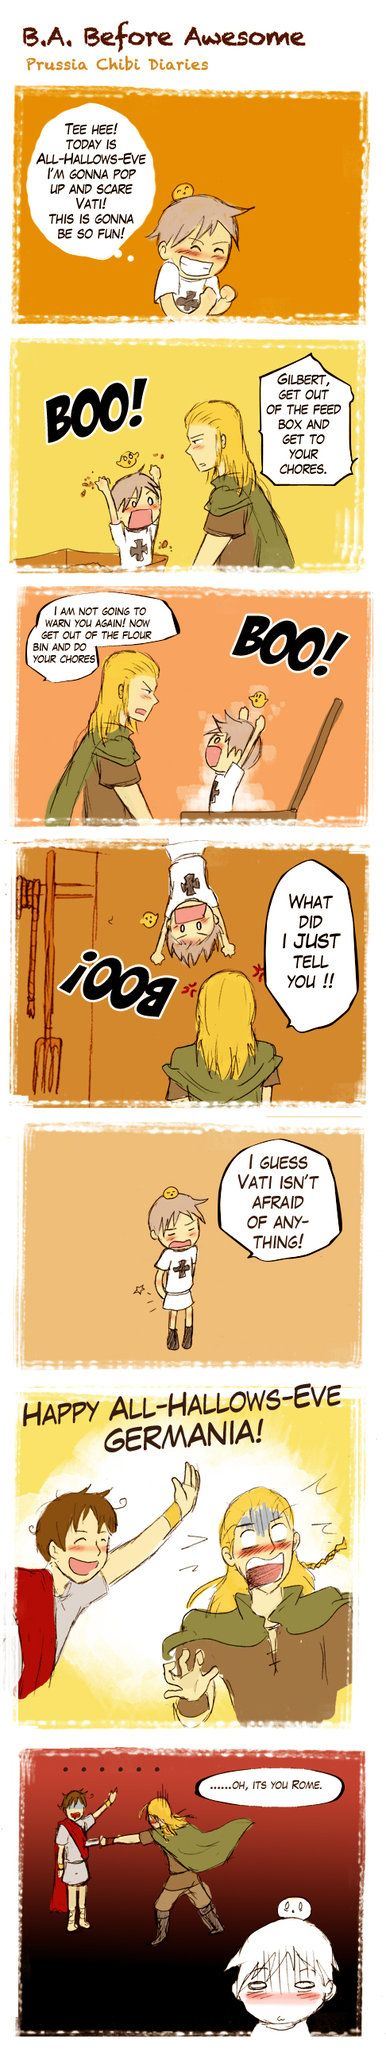 Vati isn't scared of anything!!... except for Grandpa Rome, apparently...LOL!!! :D Chibi Prussia Diaries